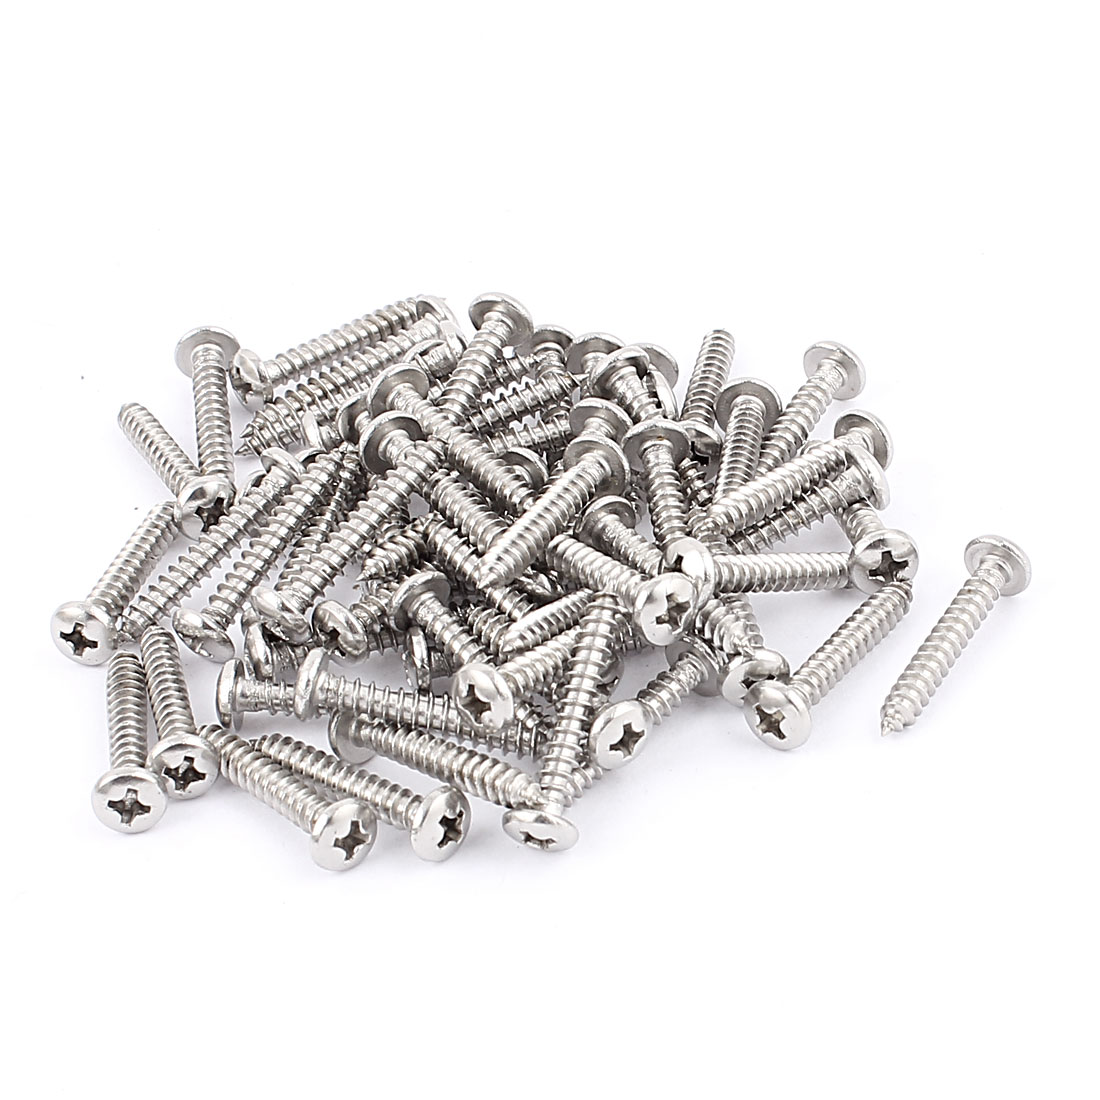 3.9mm x 27mm Stainless Steel Phillips Pan Head Self Tapping Screw Fasteners Silver Tone 60 Pcs